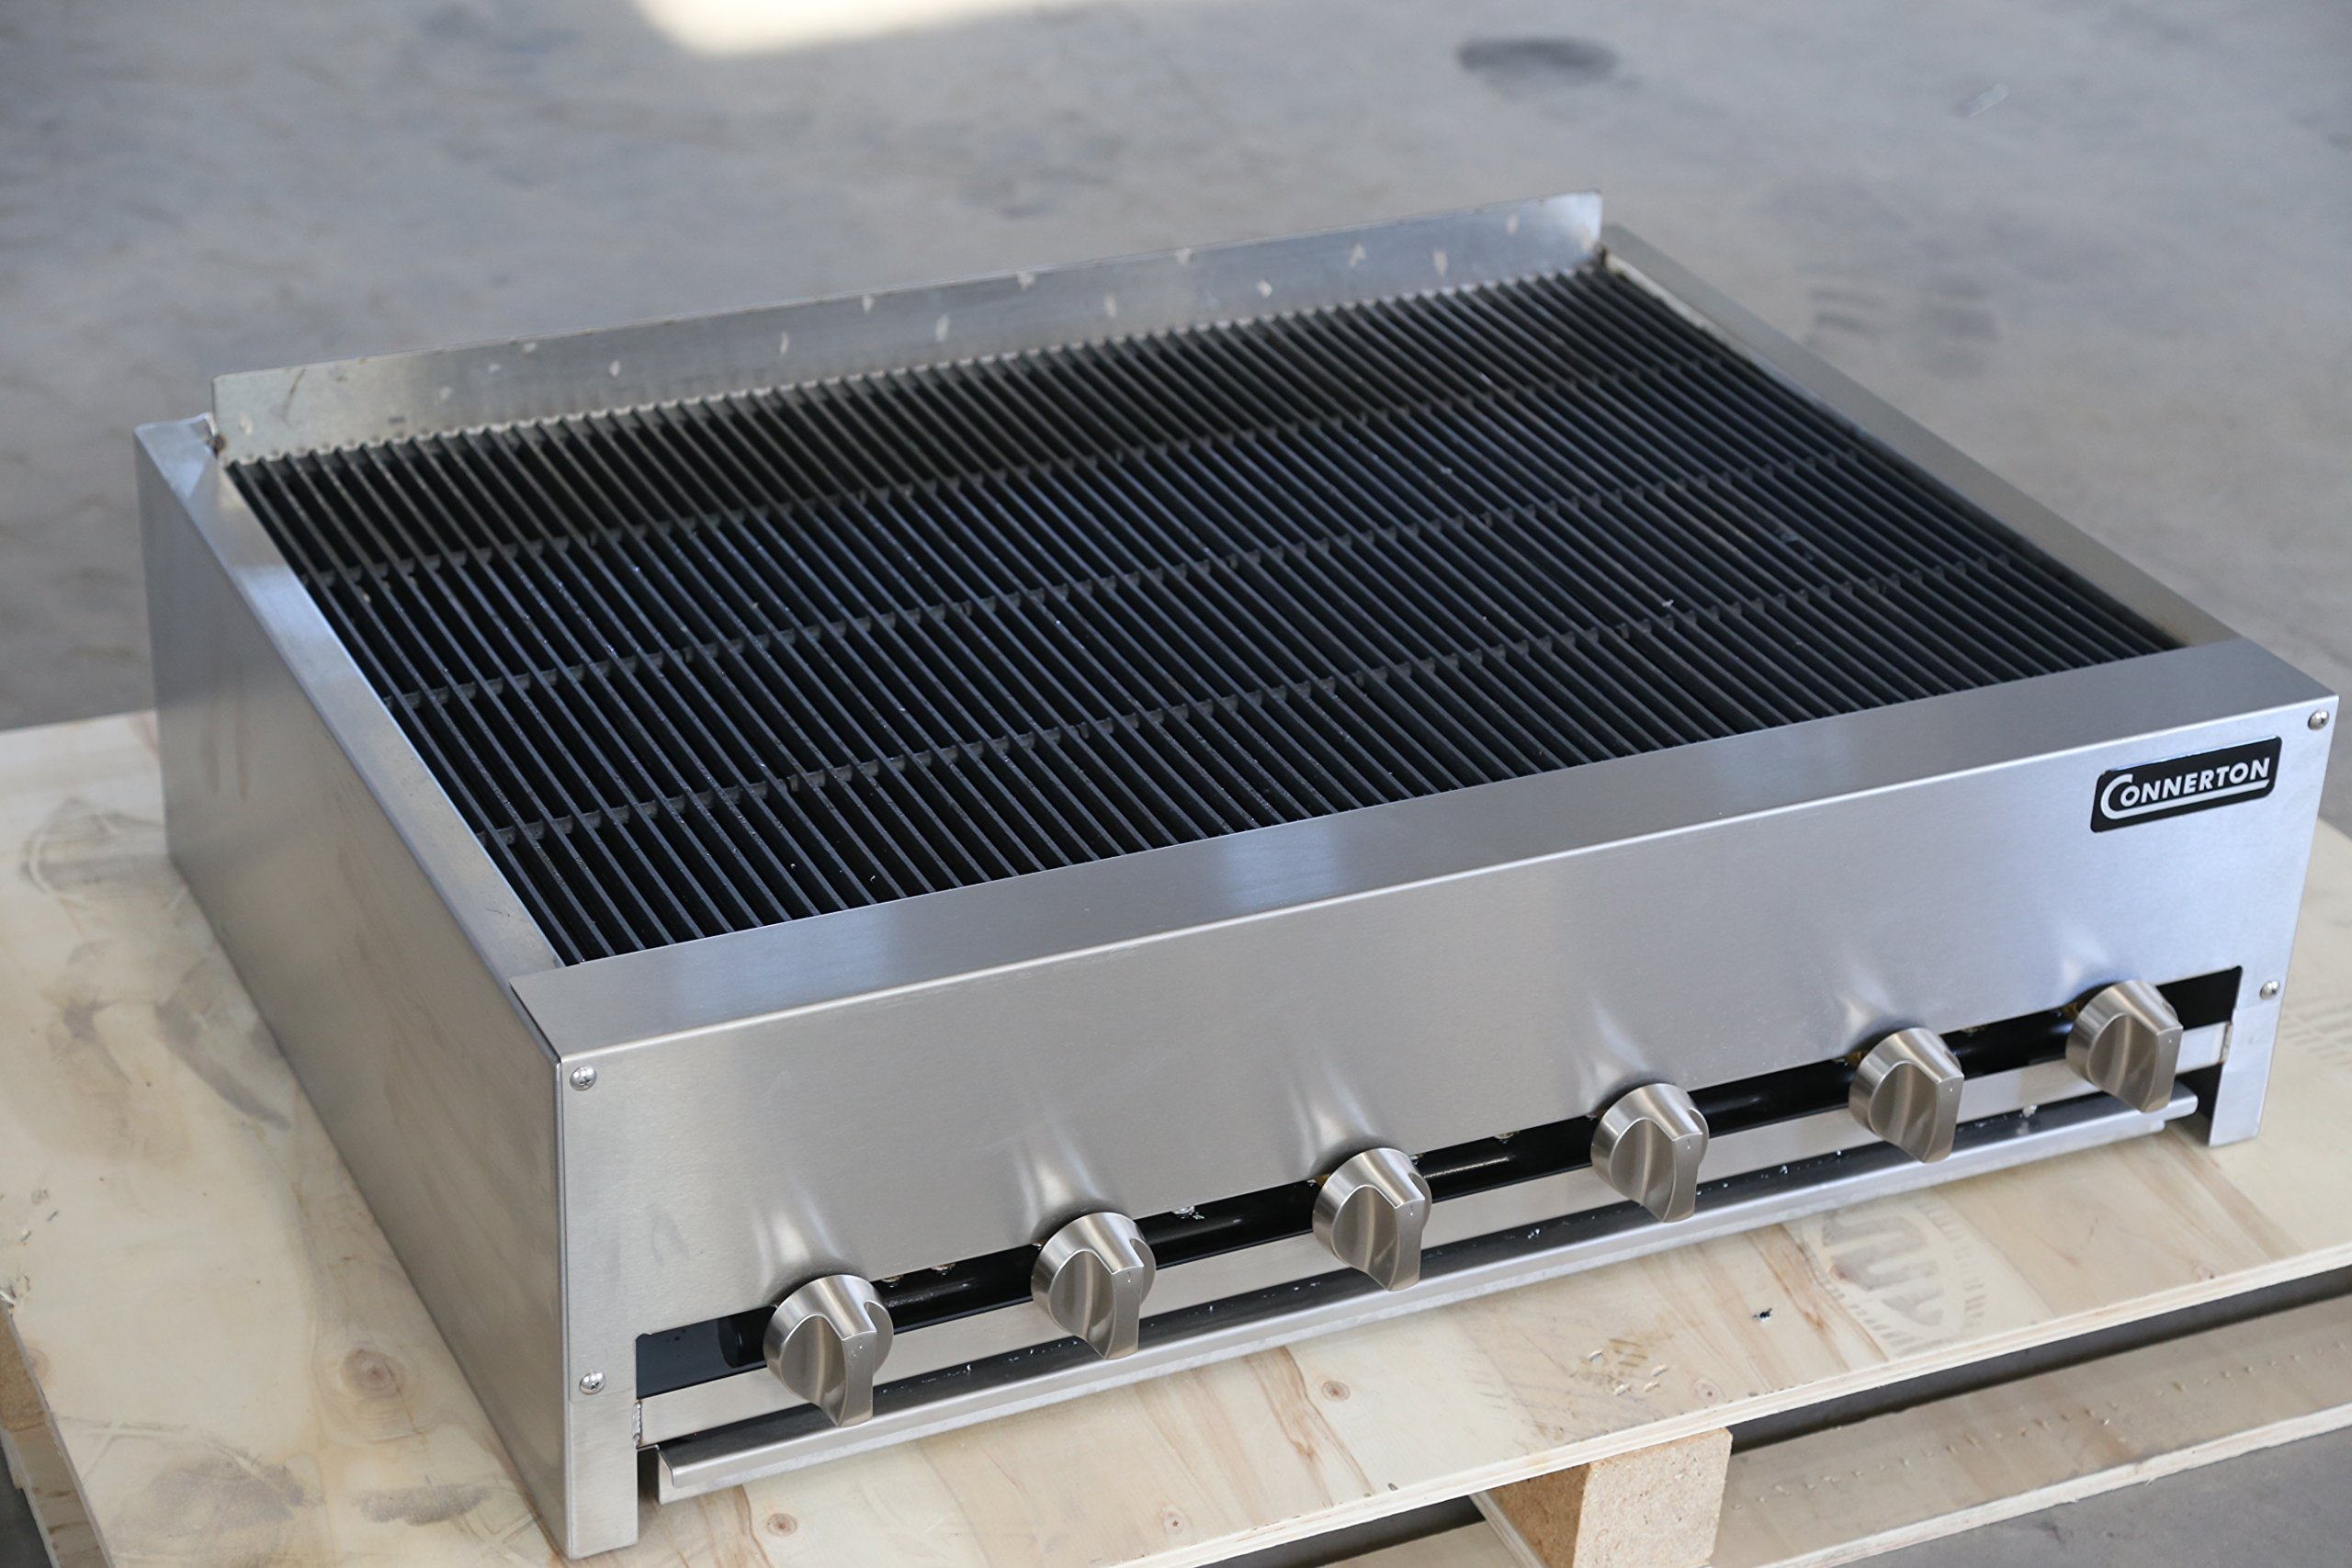 Connerton CRB-36 36'' Gas Charbroiler by Connerton